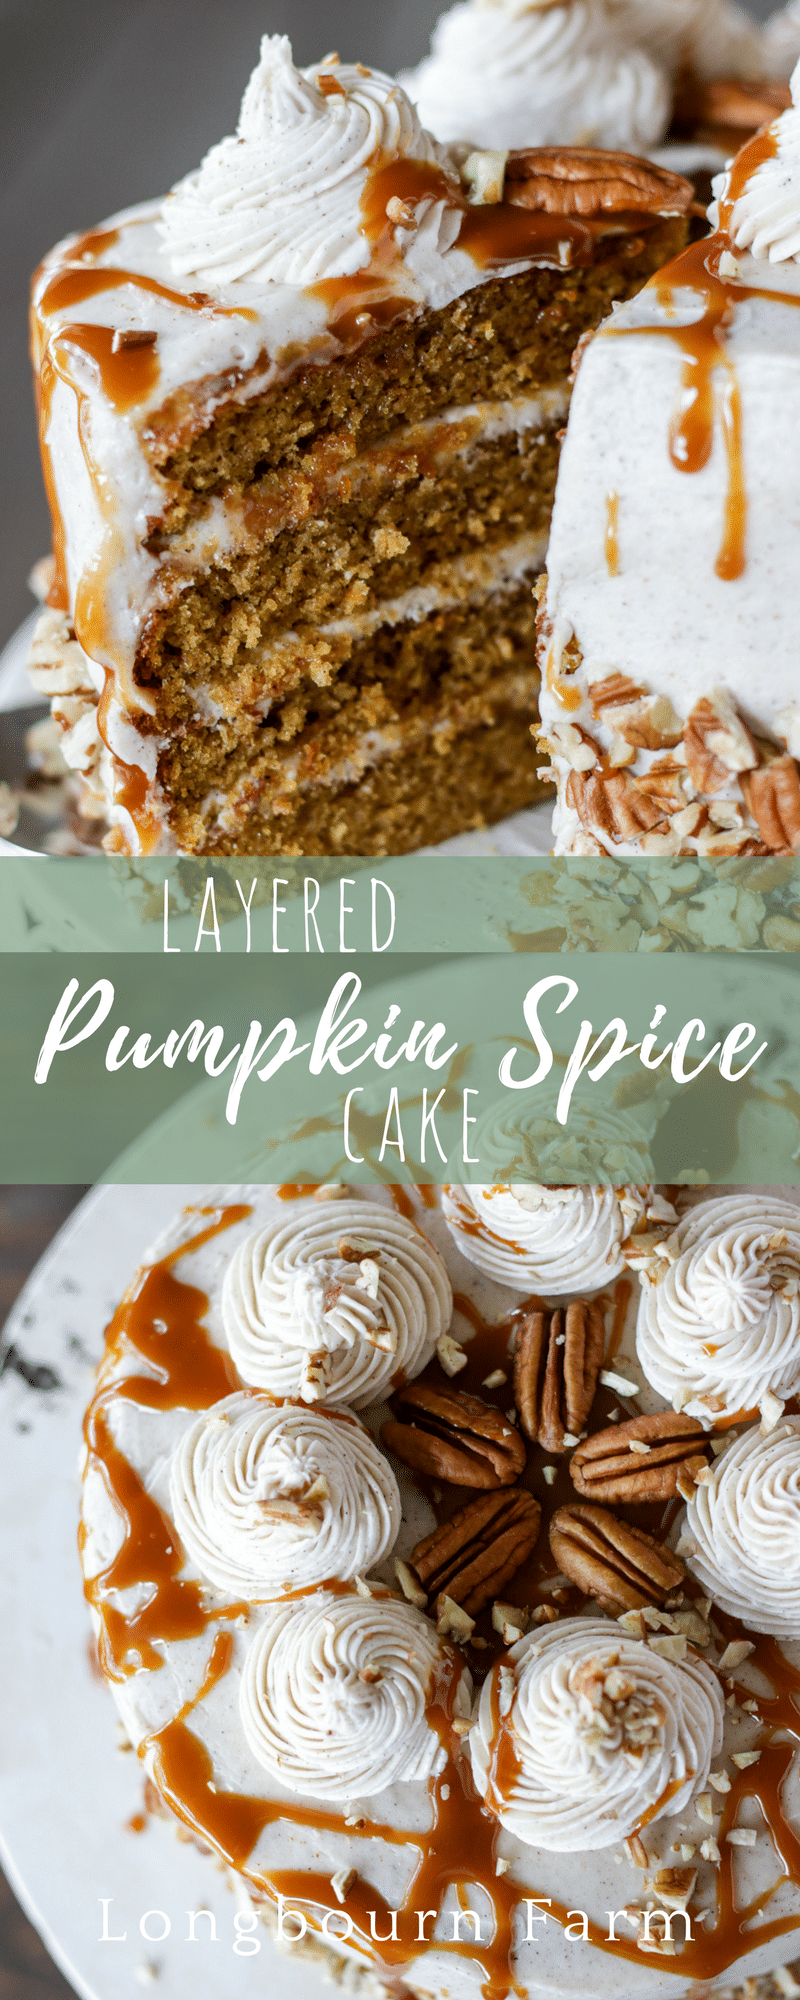 This layered pumpkin spice cake is not only a show-stopper, it is super easy to make! Moist, delicious and bursting with pumpkin and pumpkin spice flavor!